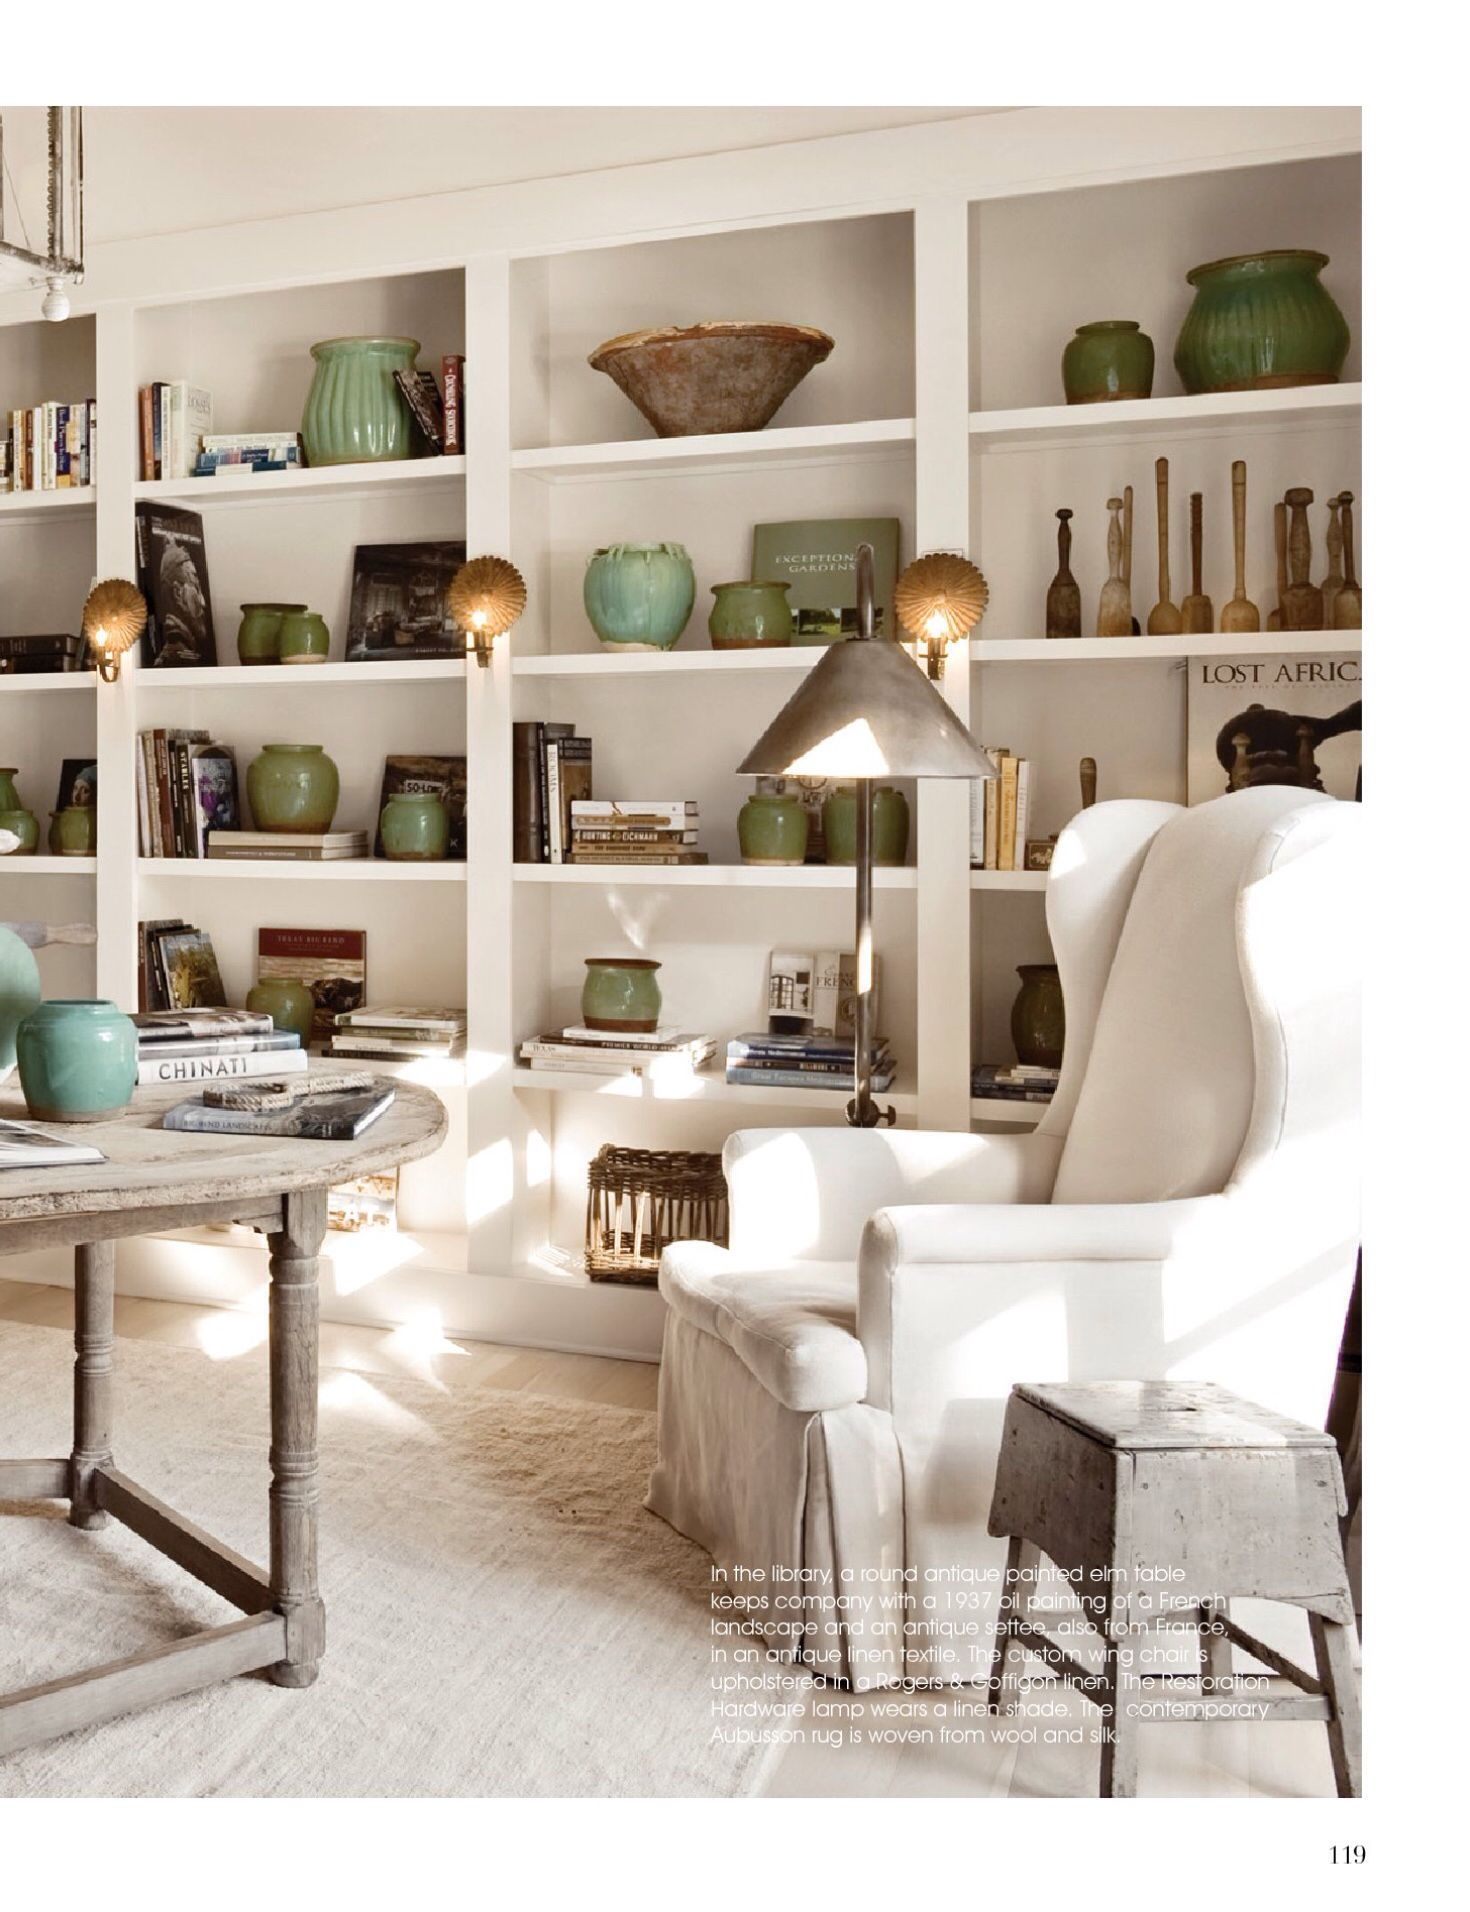 Dallas Based Interior Designer And Style Director For Milieu Magaazine Shannon Bowers